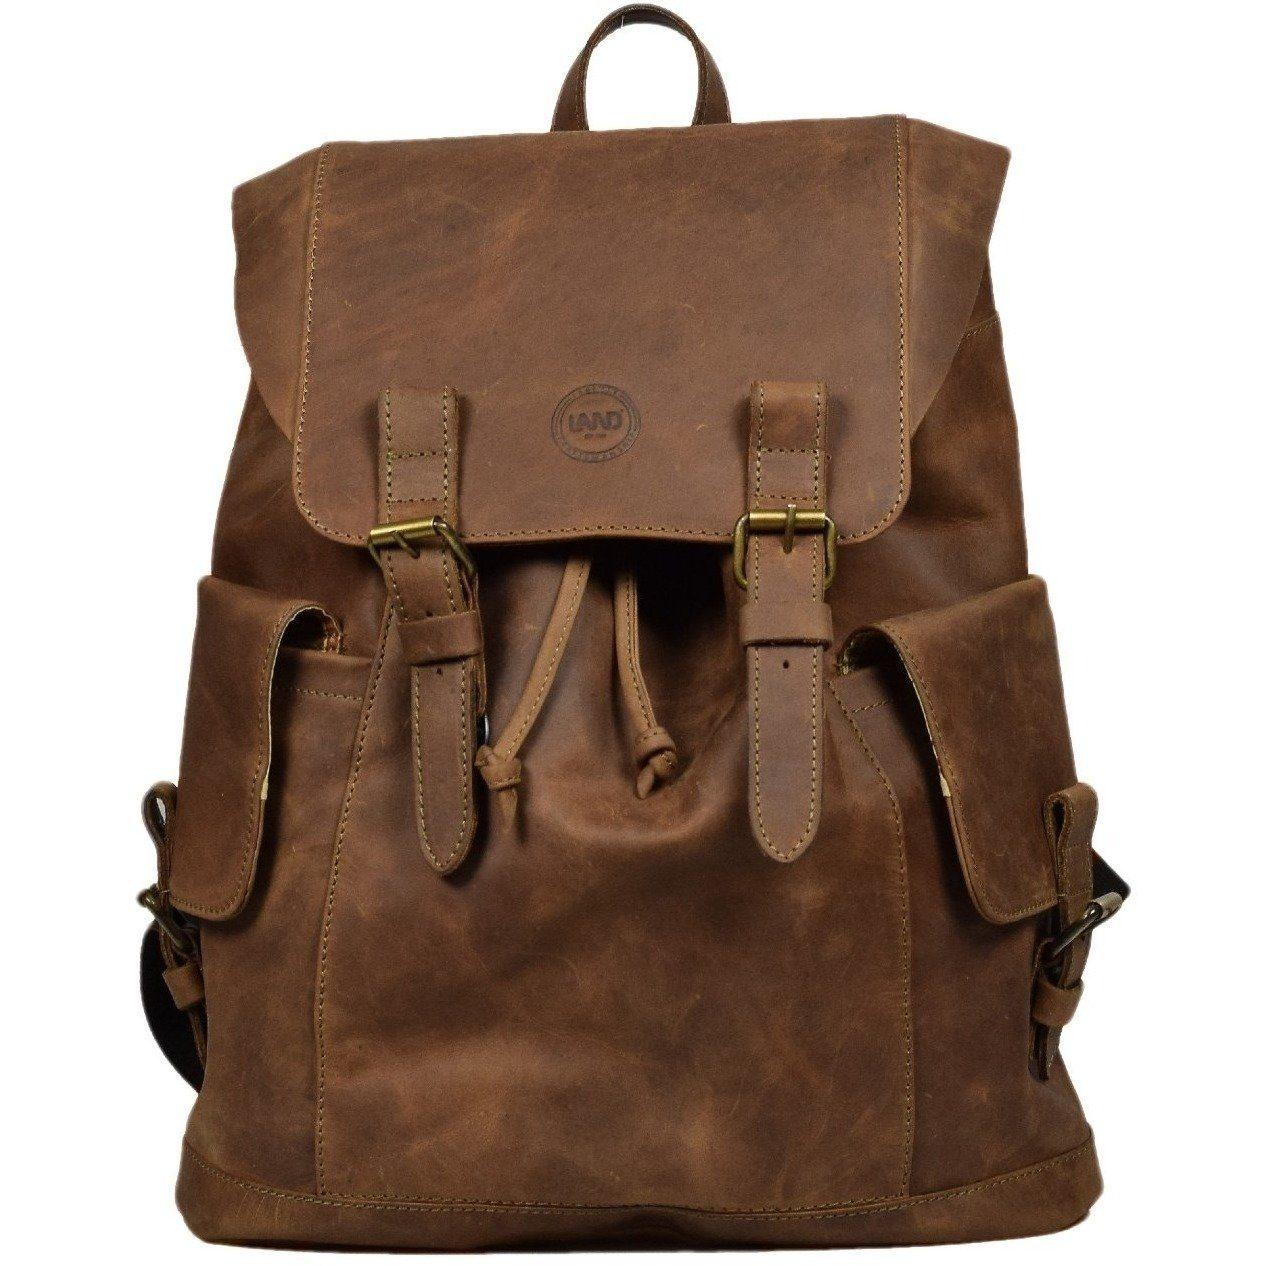 Terra Charlotte Backpack, Backpack | LAND Leather